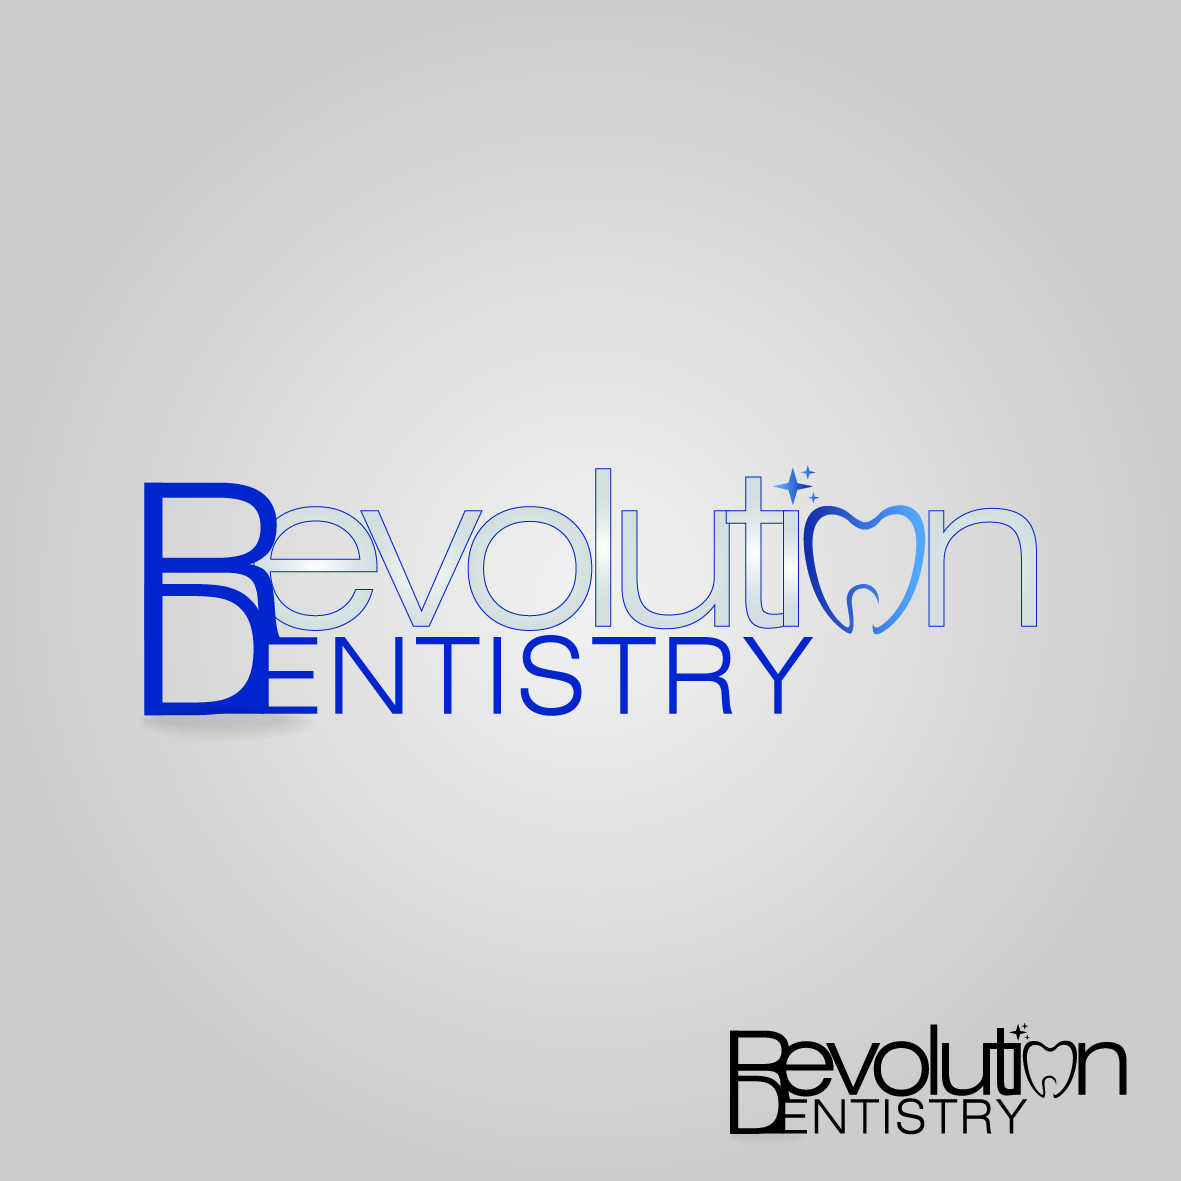 Logo Design by nTia - Entry No. 215 in the Logo Design Contest Artistic Logo Design for Revolution Dentistry.